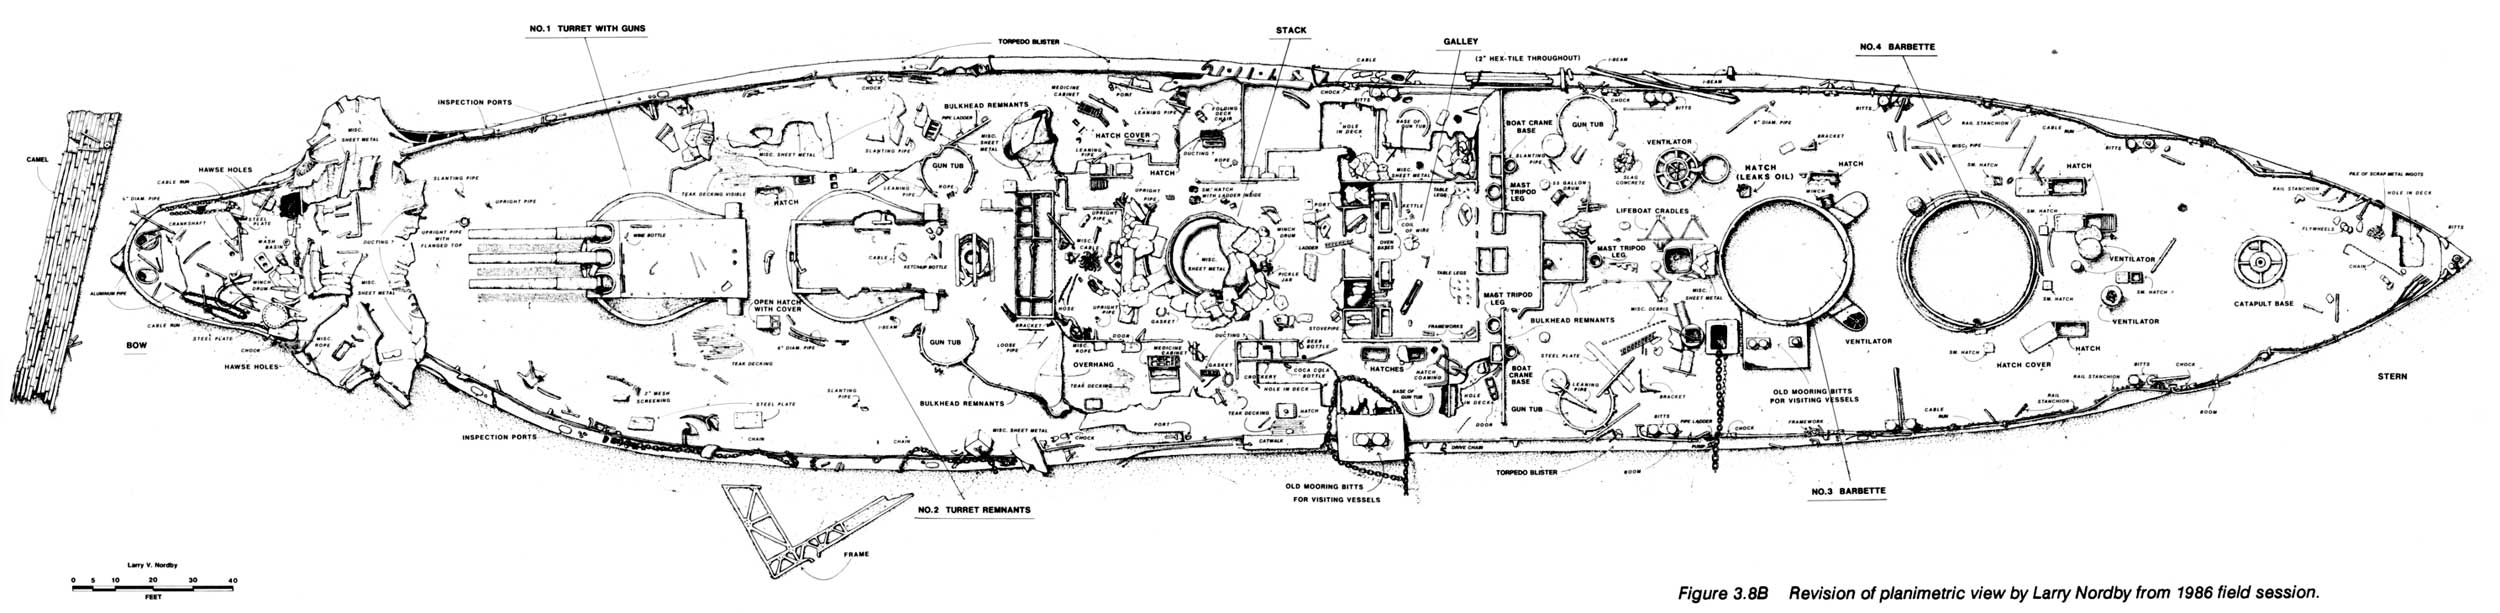 Uss Arizona Memorial Submerged Cultural Resources Study Table Of Ford 460 Marine Engine Diagram 38